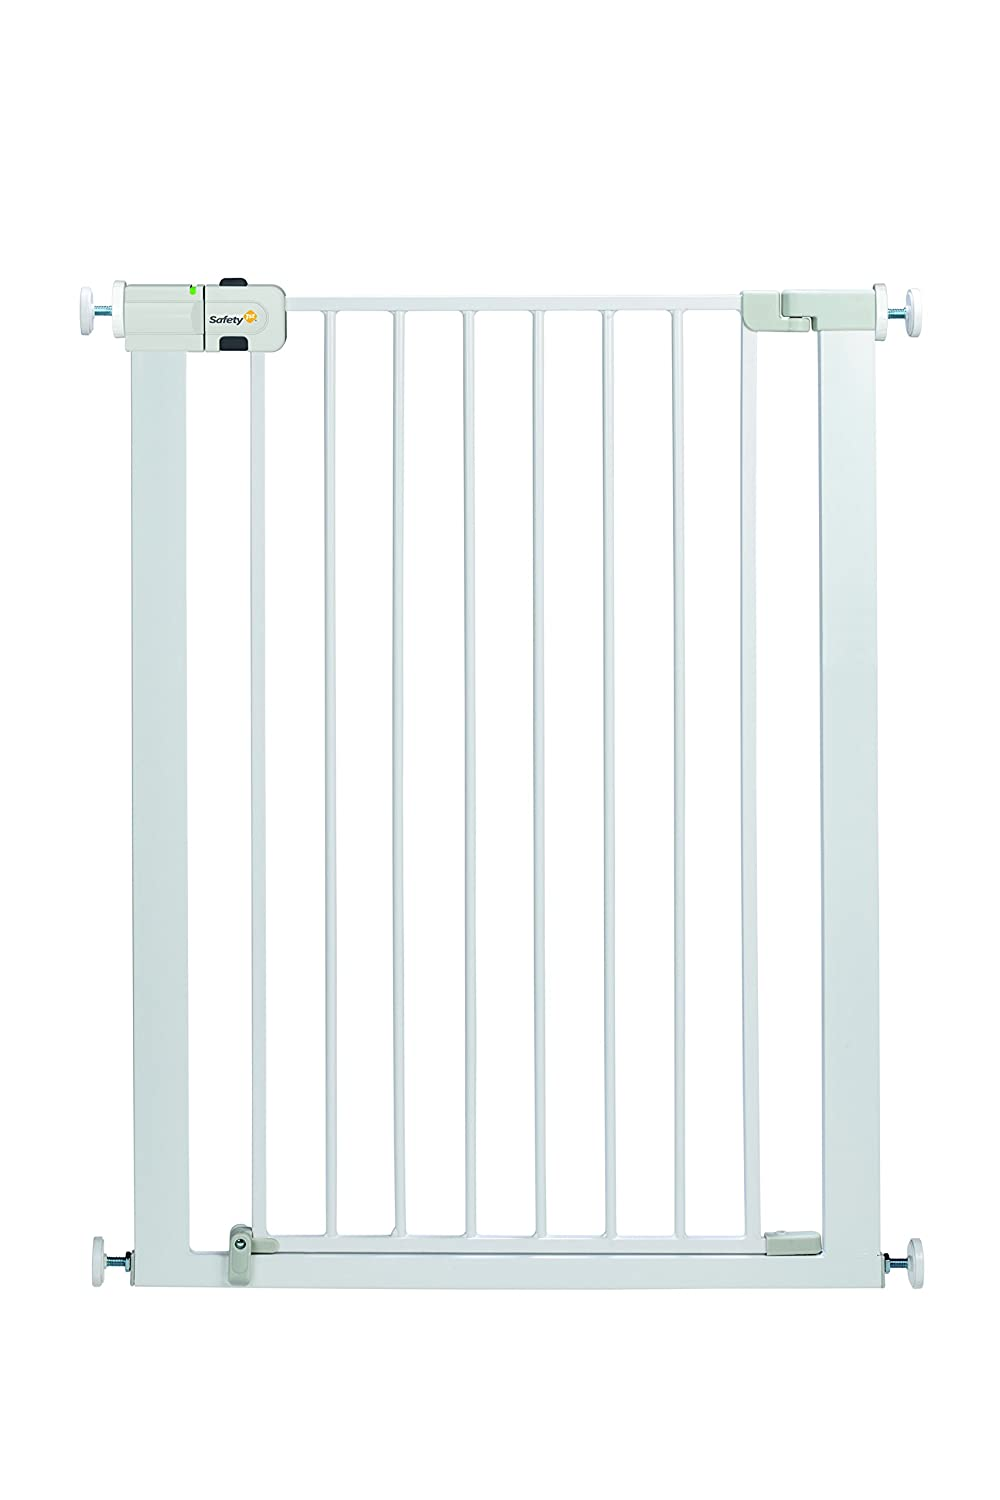 Safety 1st 7 cm Extensions for 24254310 Easy Close Extra Tall Safety Gate – White